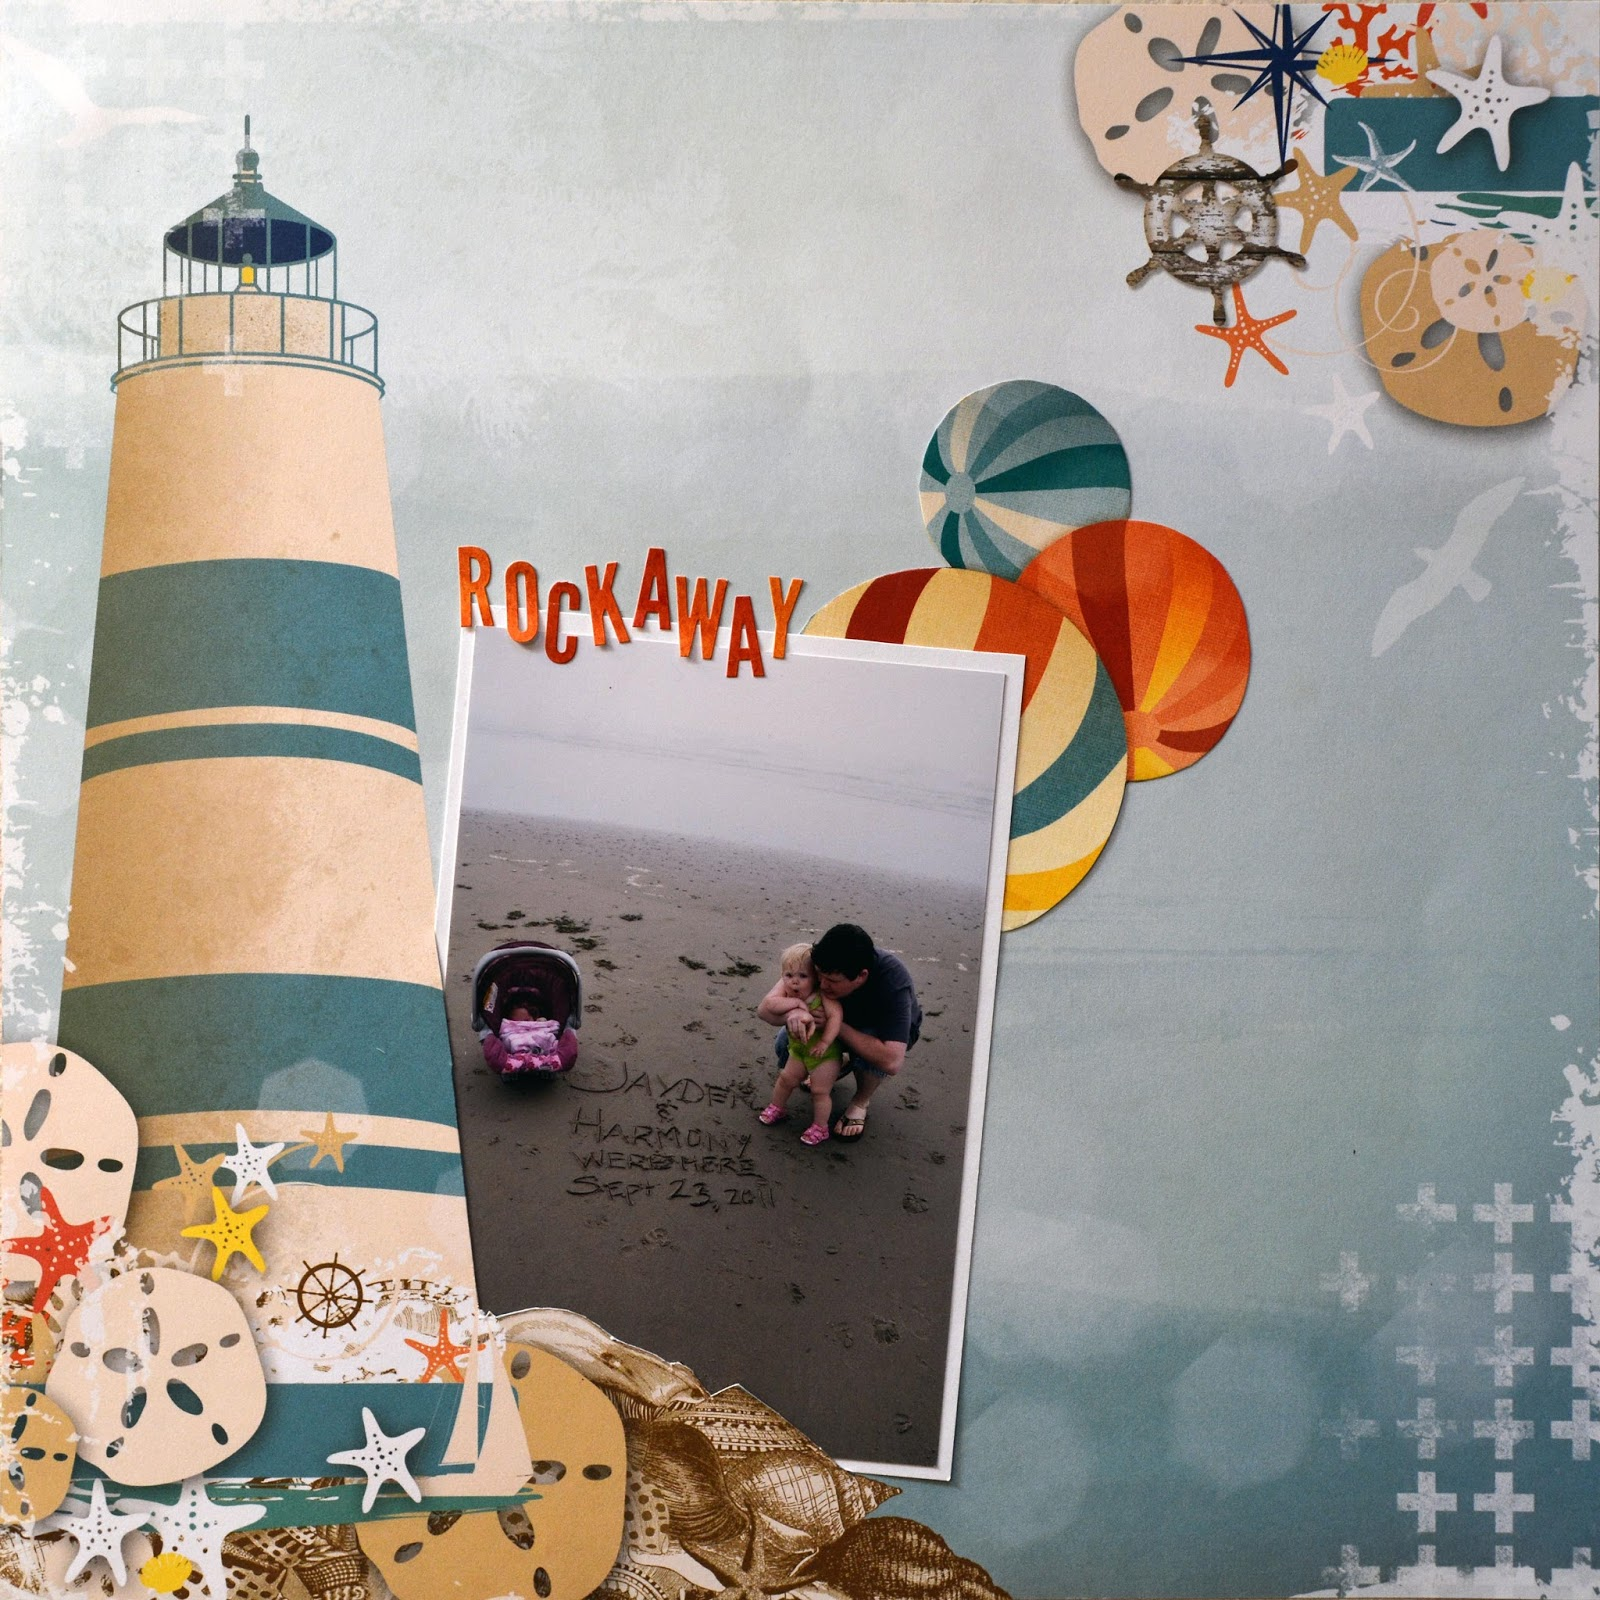 rockaway beach buddhist single women Going out to rockaway beach has been on my mind for a while now ever since i a conversation with buddhist insights co-founders, bhante suddhāso & giovanna maselli.